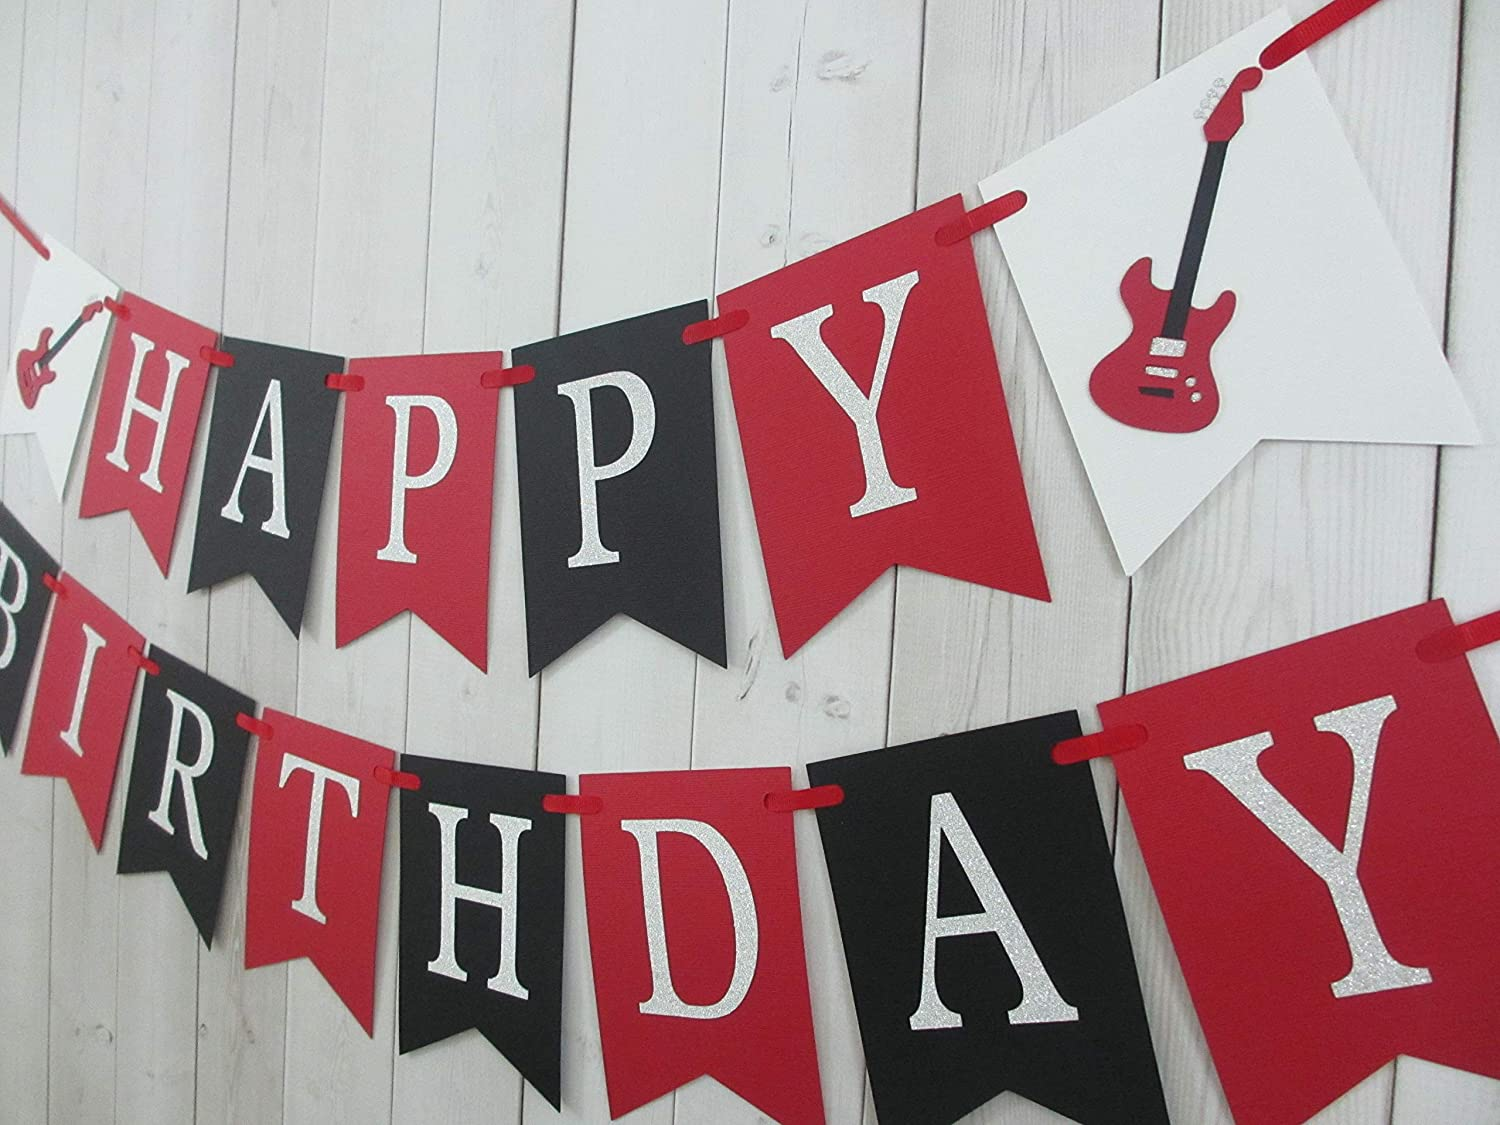 Guitar Rock Happy Birthday Party Banner Sign Red Black Silver Music